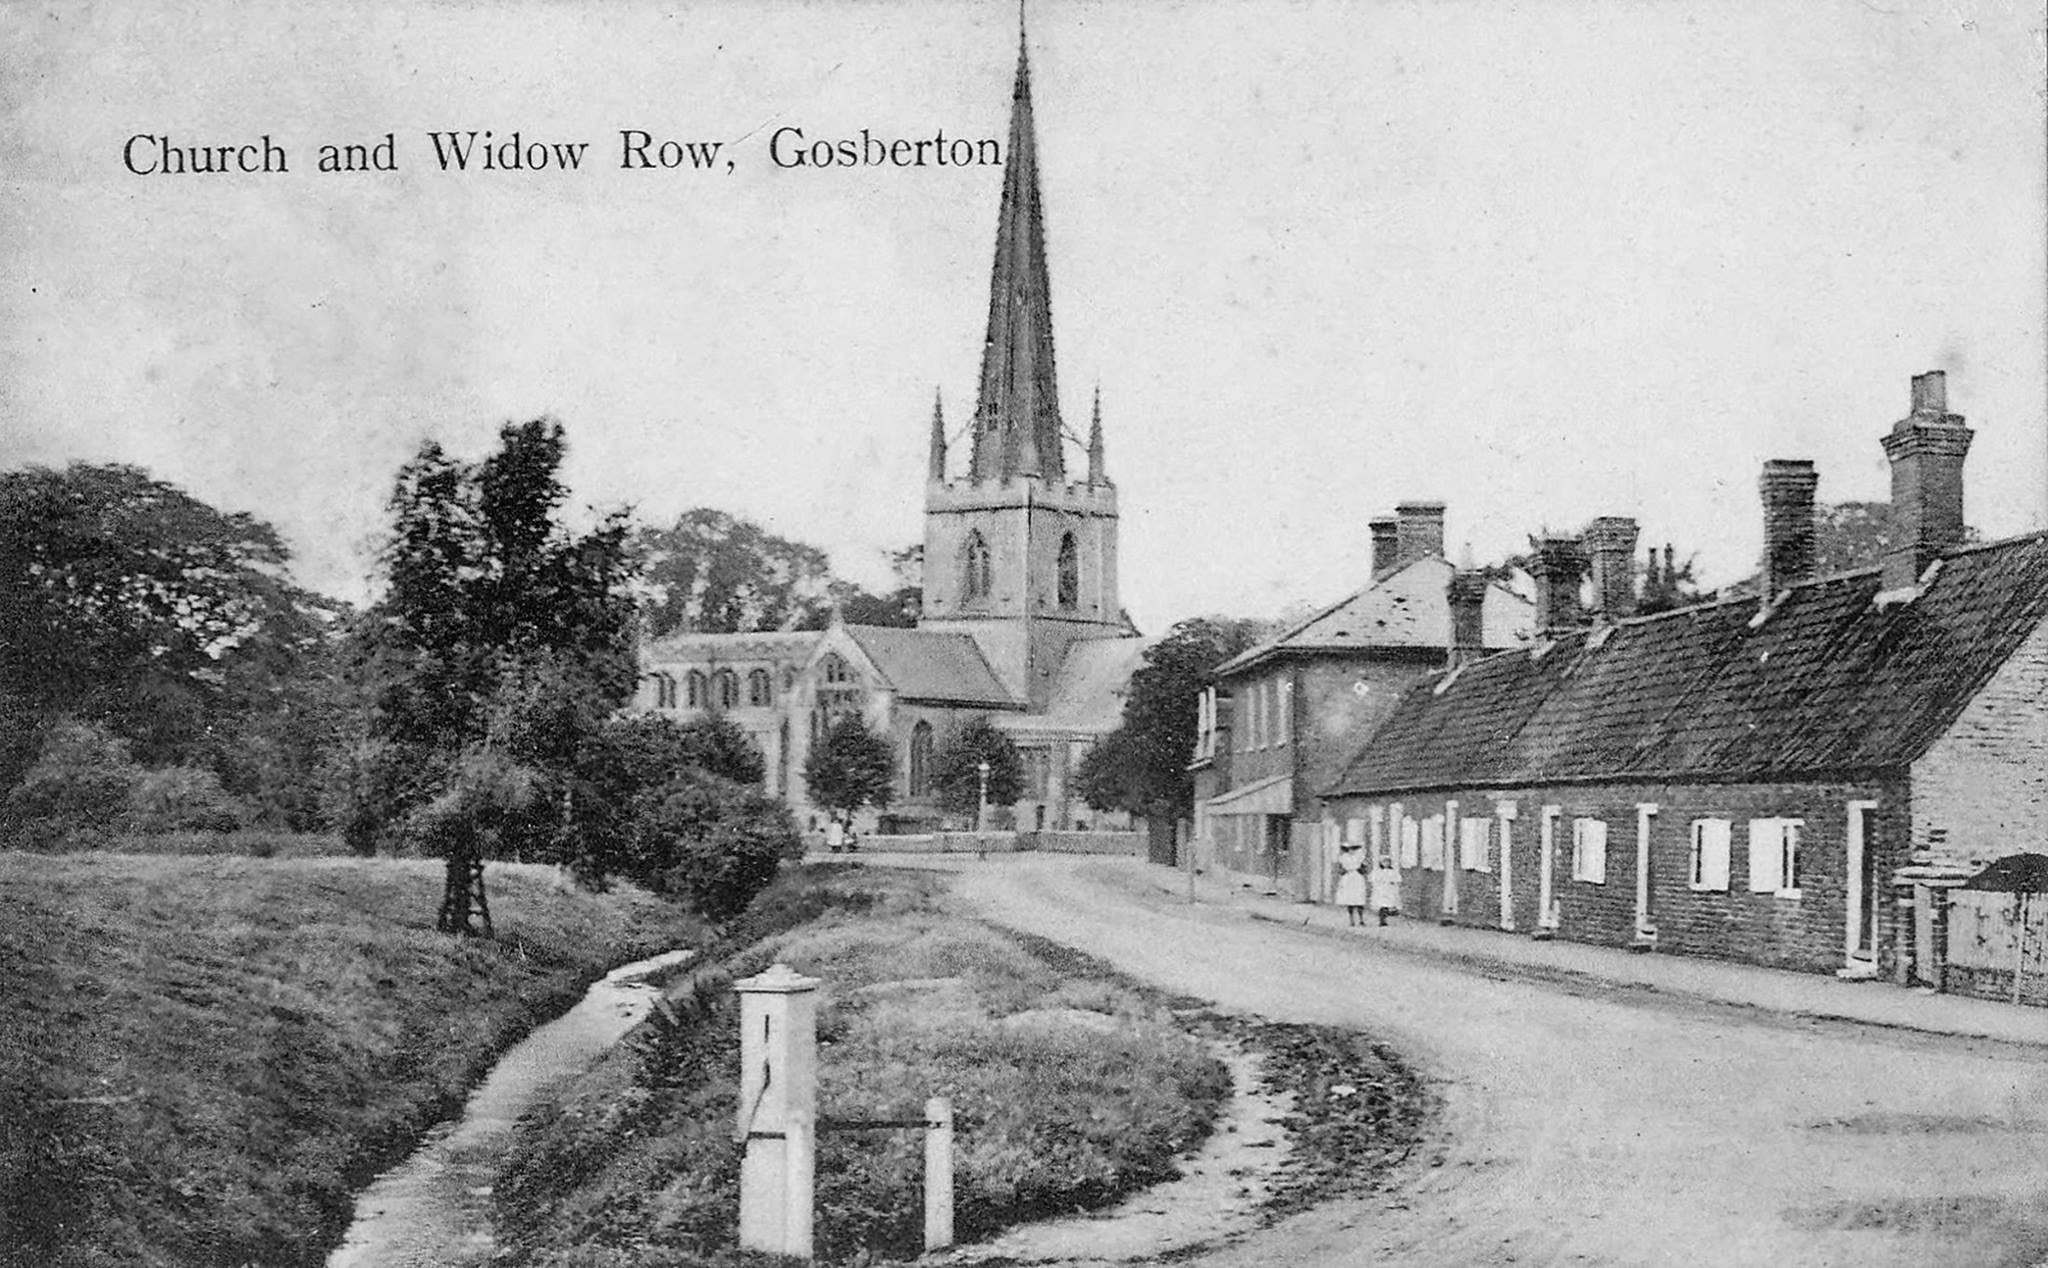 Church and Widow Row, Gosberton